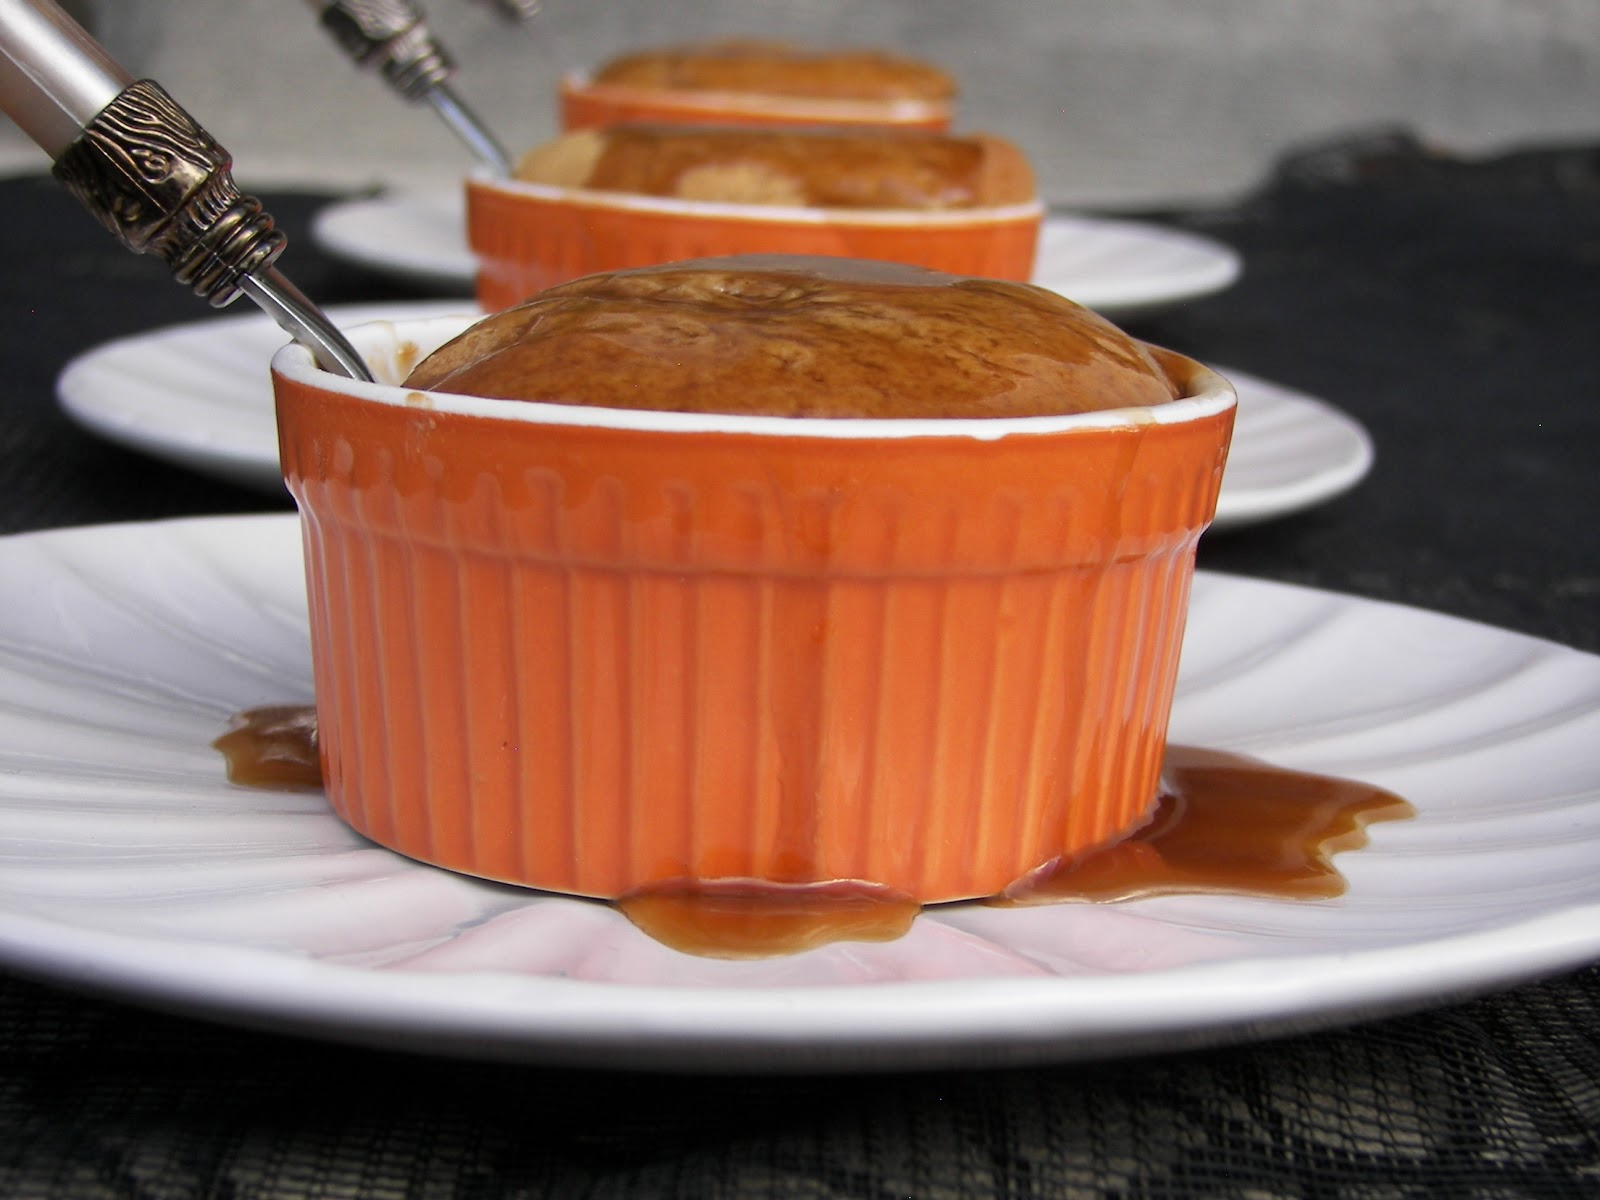 ... Spice Cake Covered With Rum Caramel Sauce/Walk with Zoulah and Beaulah